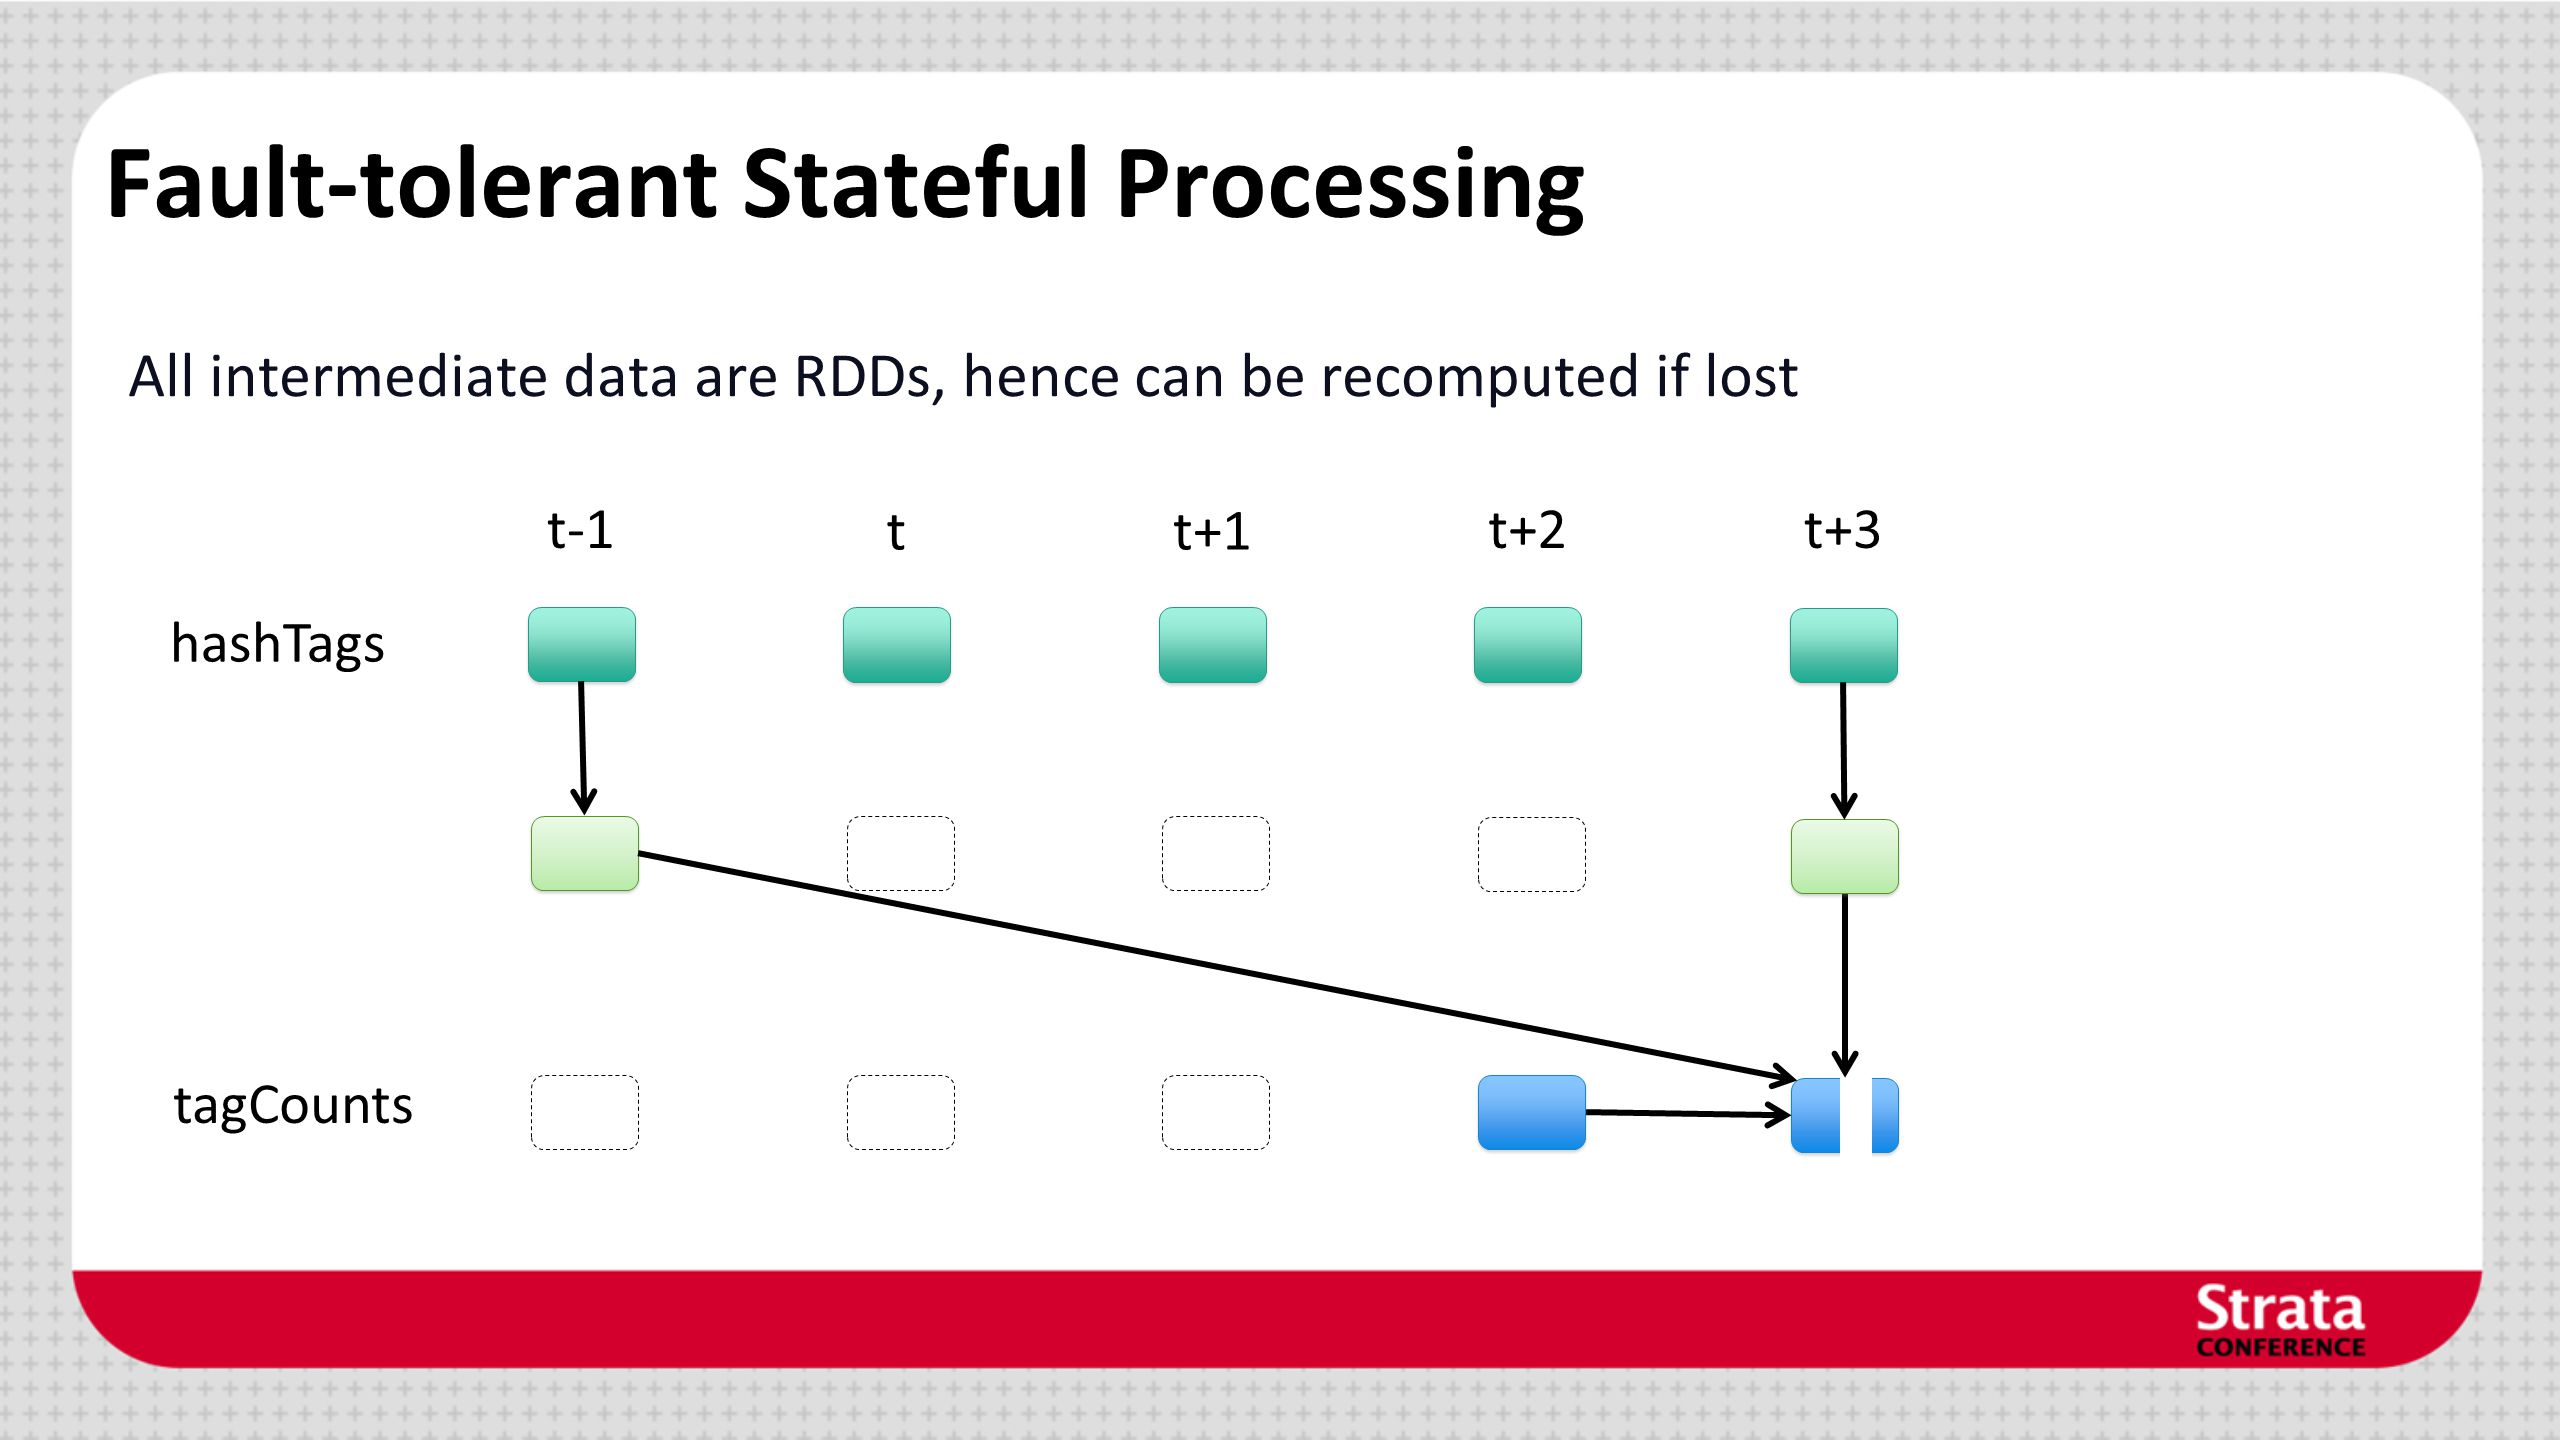 Fault-tolerant Stateful Processing All intermediate data are RDDs, hence can be recomputed if lost hashTags t-1 tt+1 t+2t+3 tagCounts